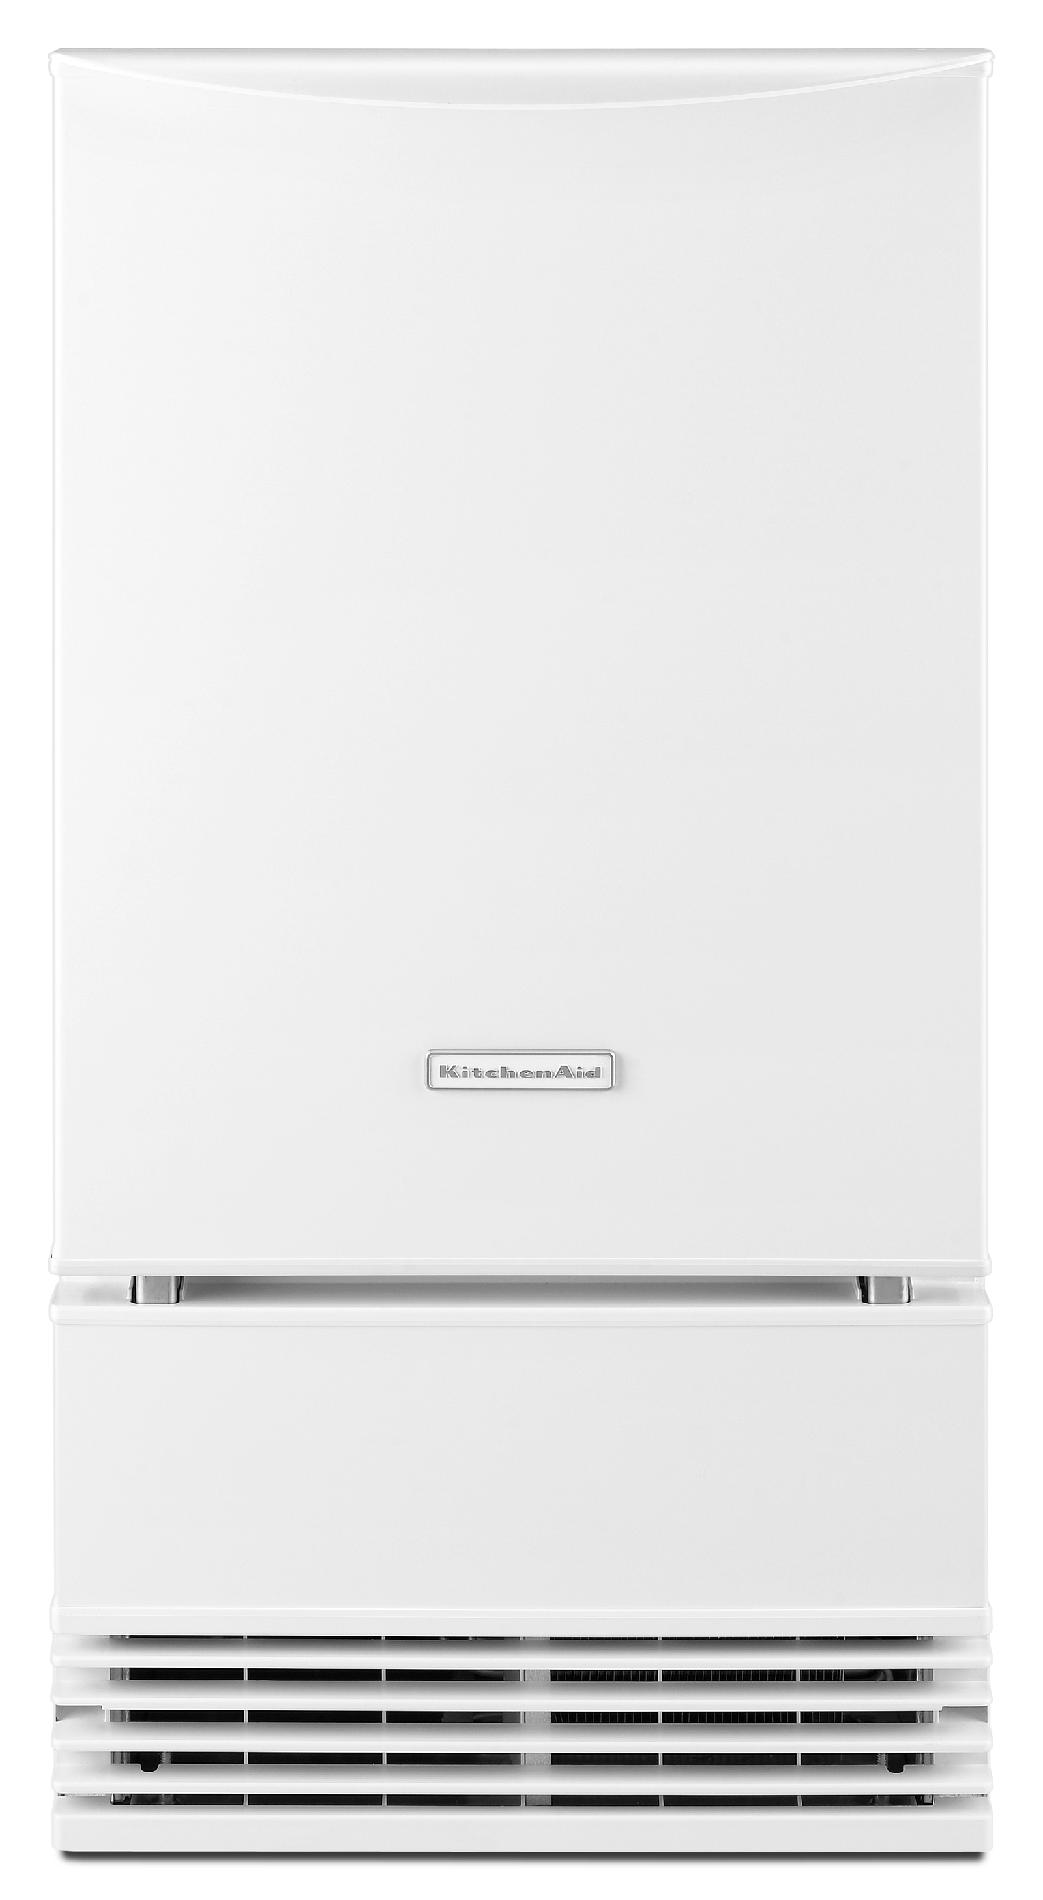 KitchenAid KUIS18PNZW 18 Ice Maker w/ Drain Pump - White